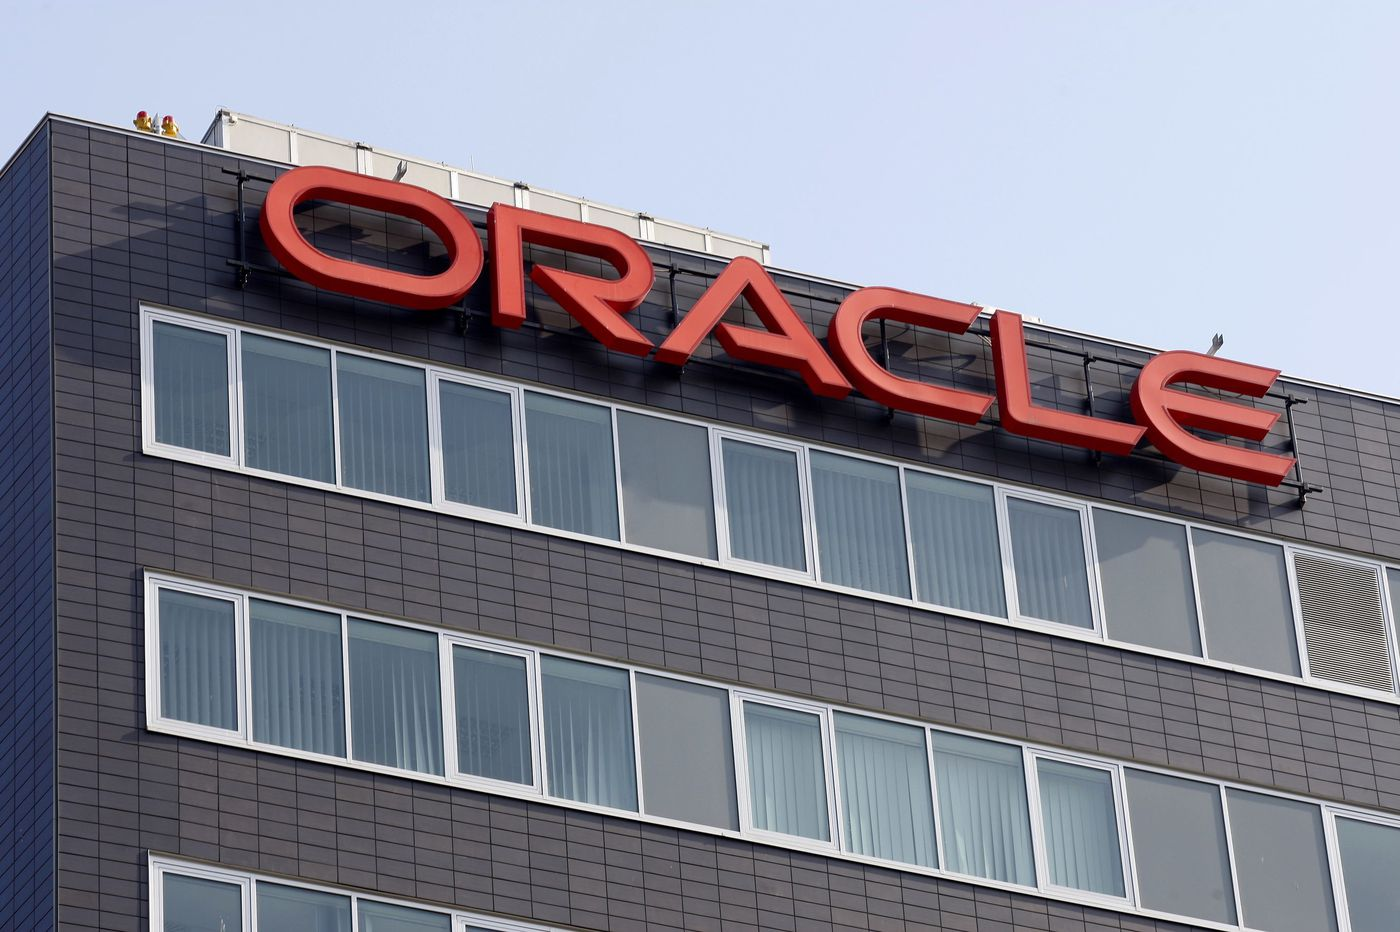 Oracle allegedly underpaid women and minorities by $400 million. Now the details are set to come out in court.